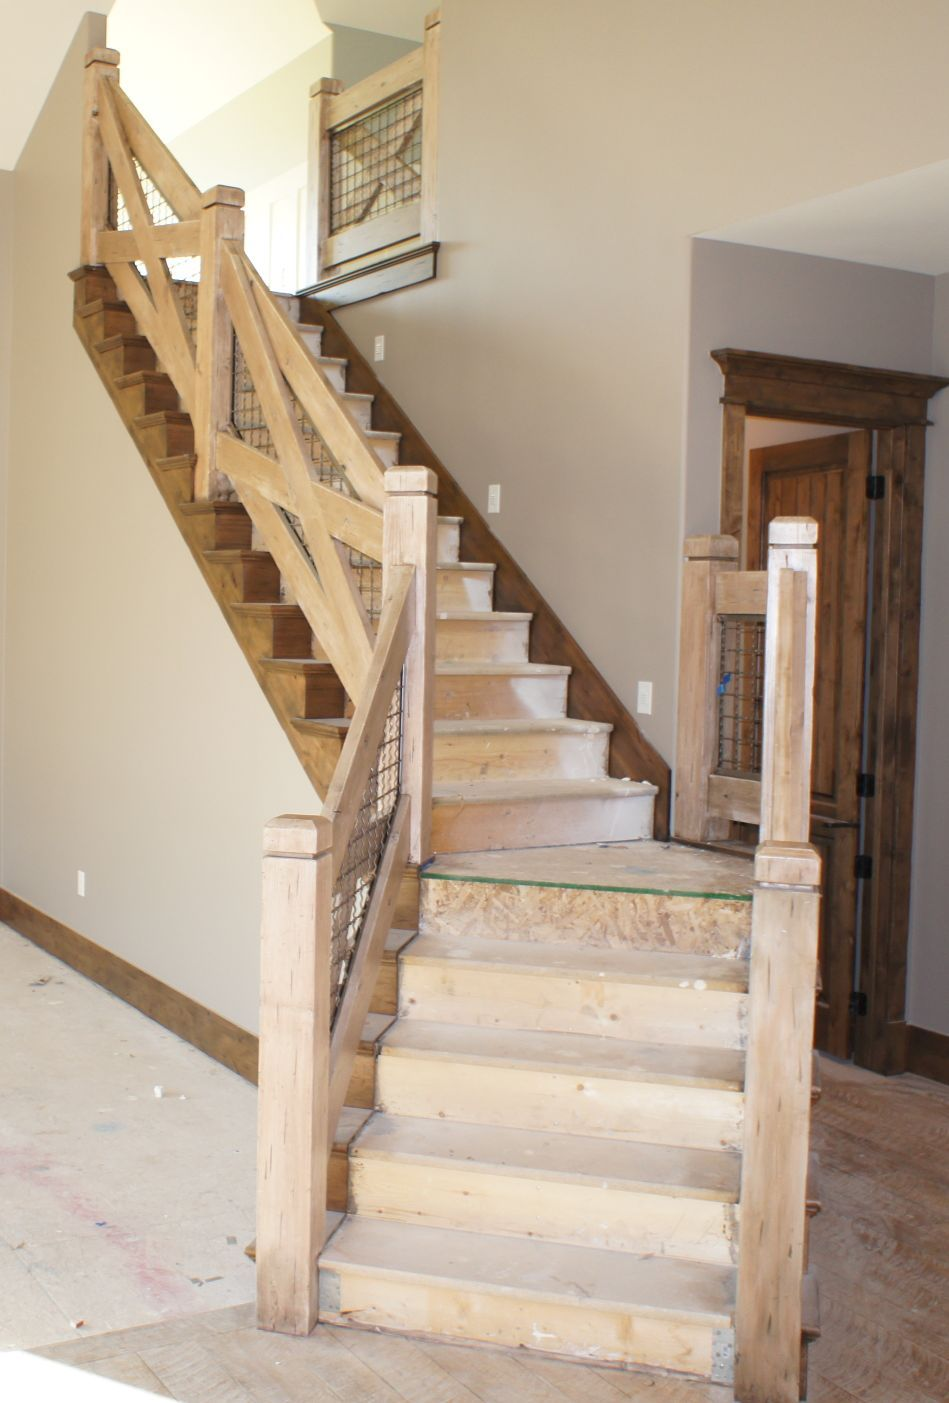 lowcost stair railing ideas 14465 Design Basement